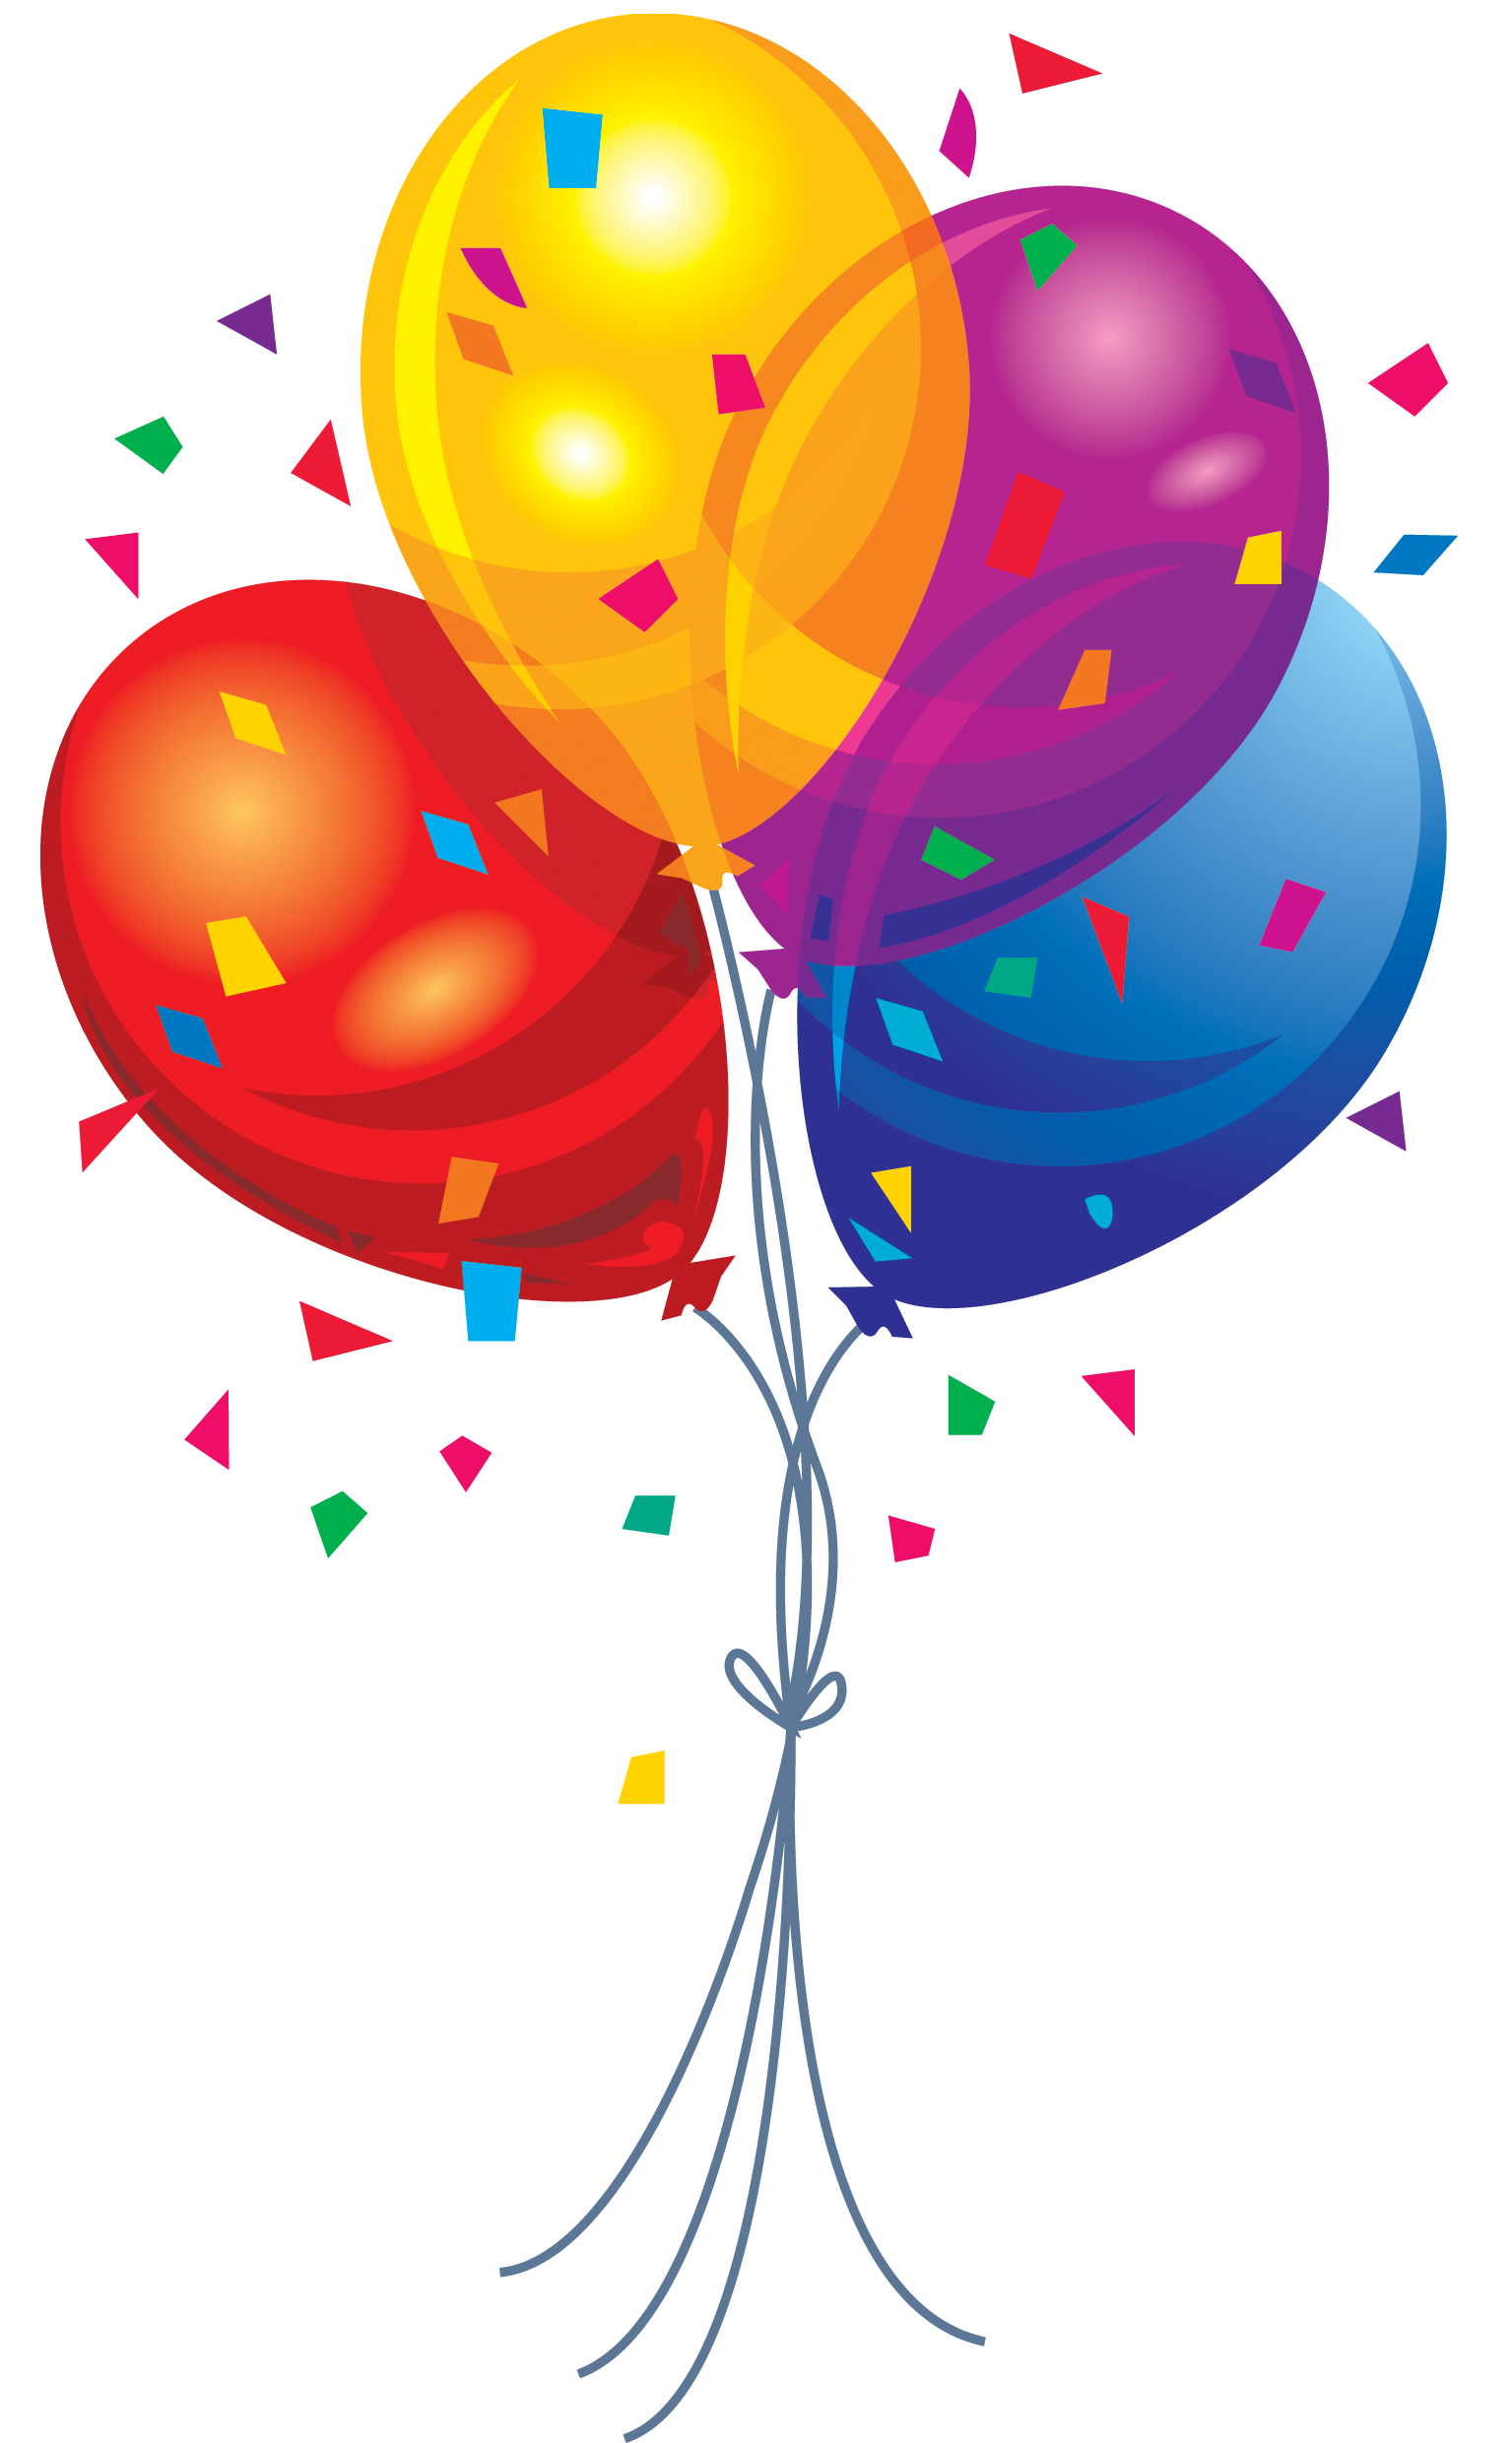 Burst balloon png. Hd transparent images pluspng